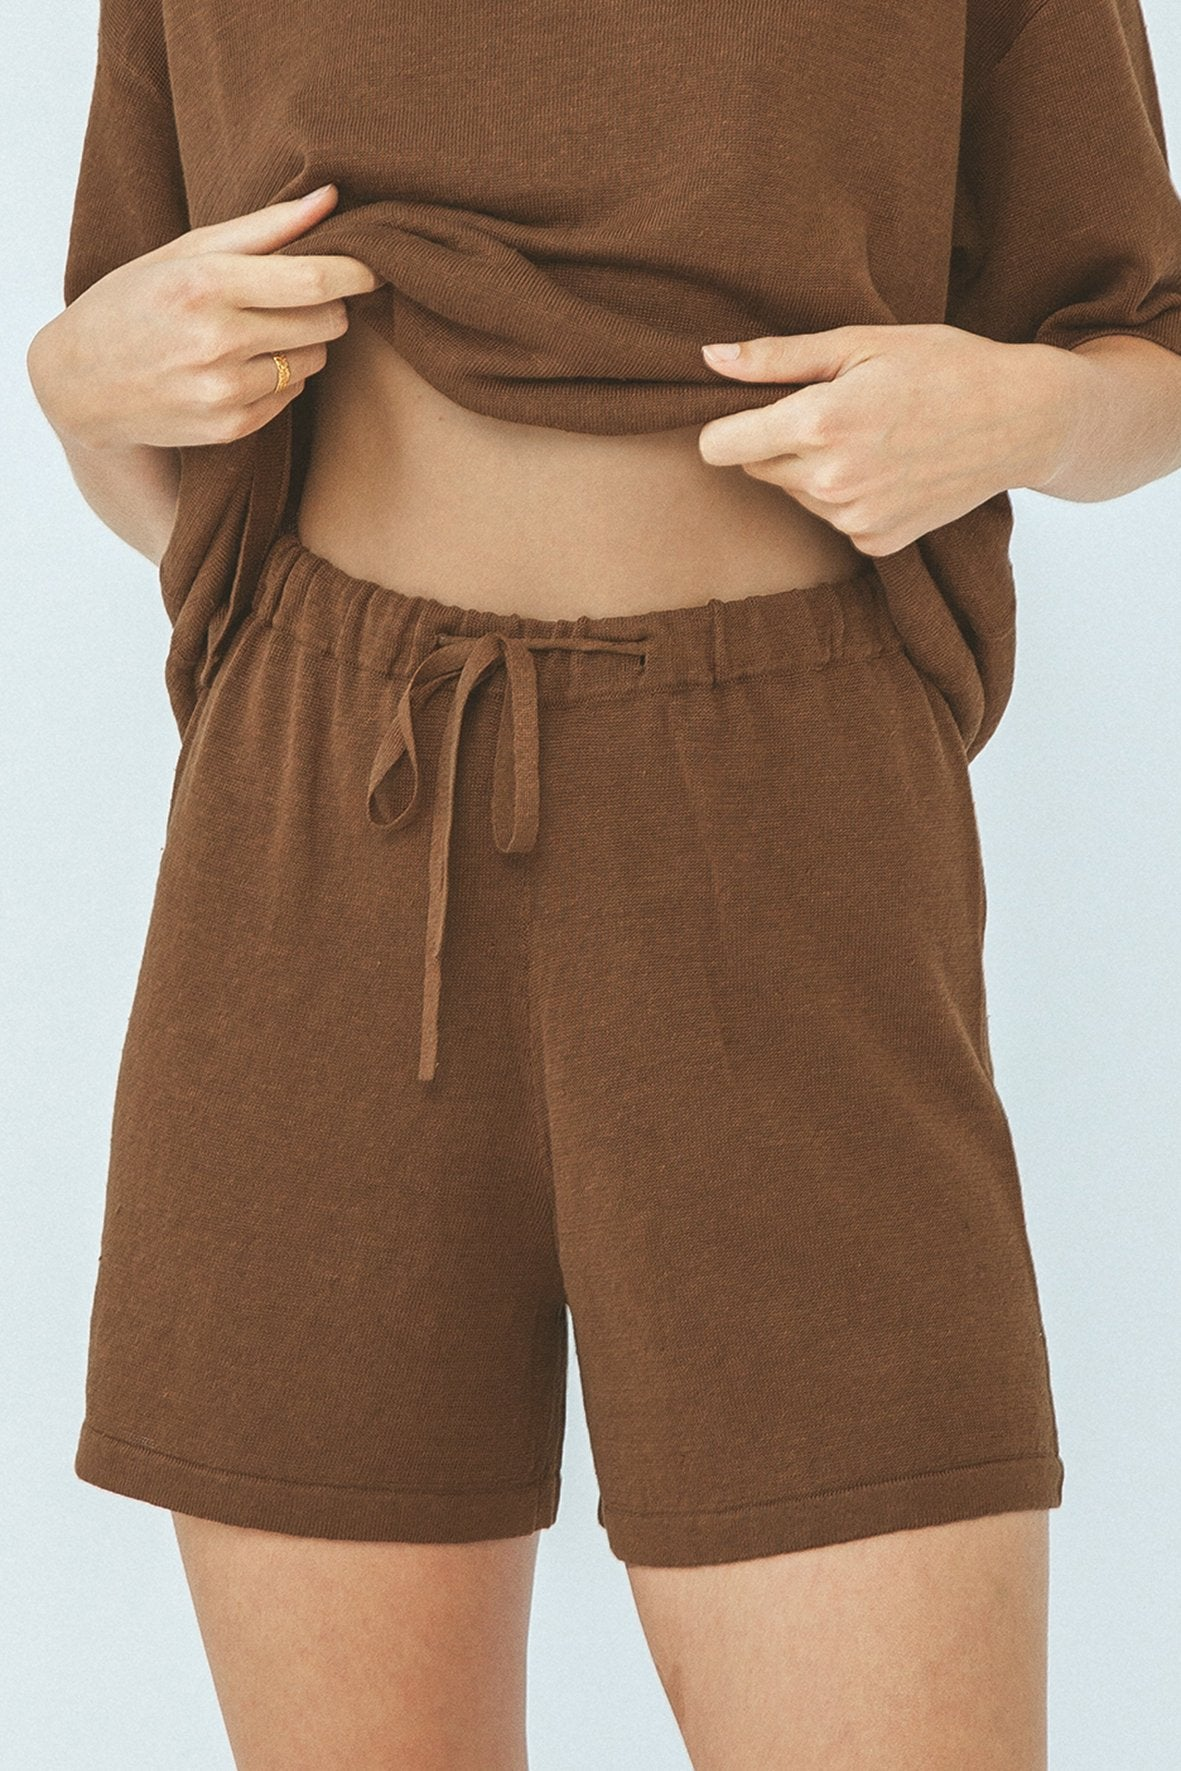 Arcaa Hugo Shorts - Chocolate